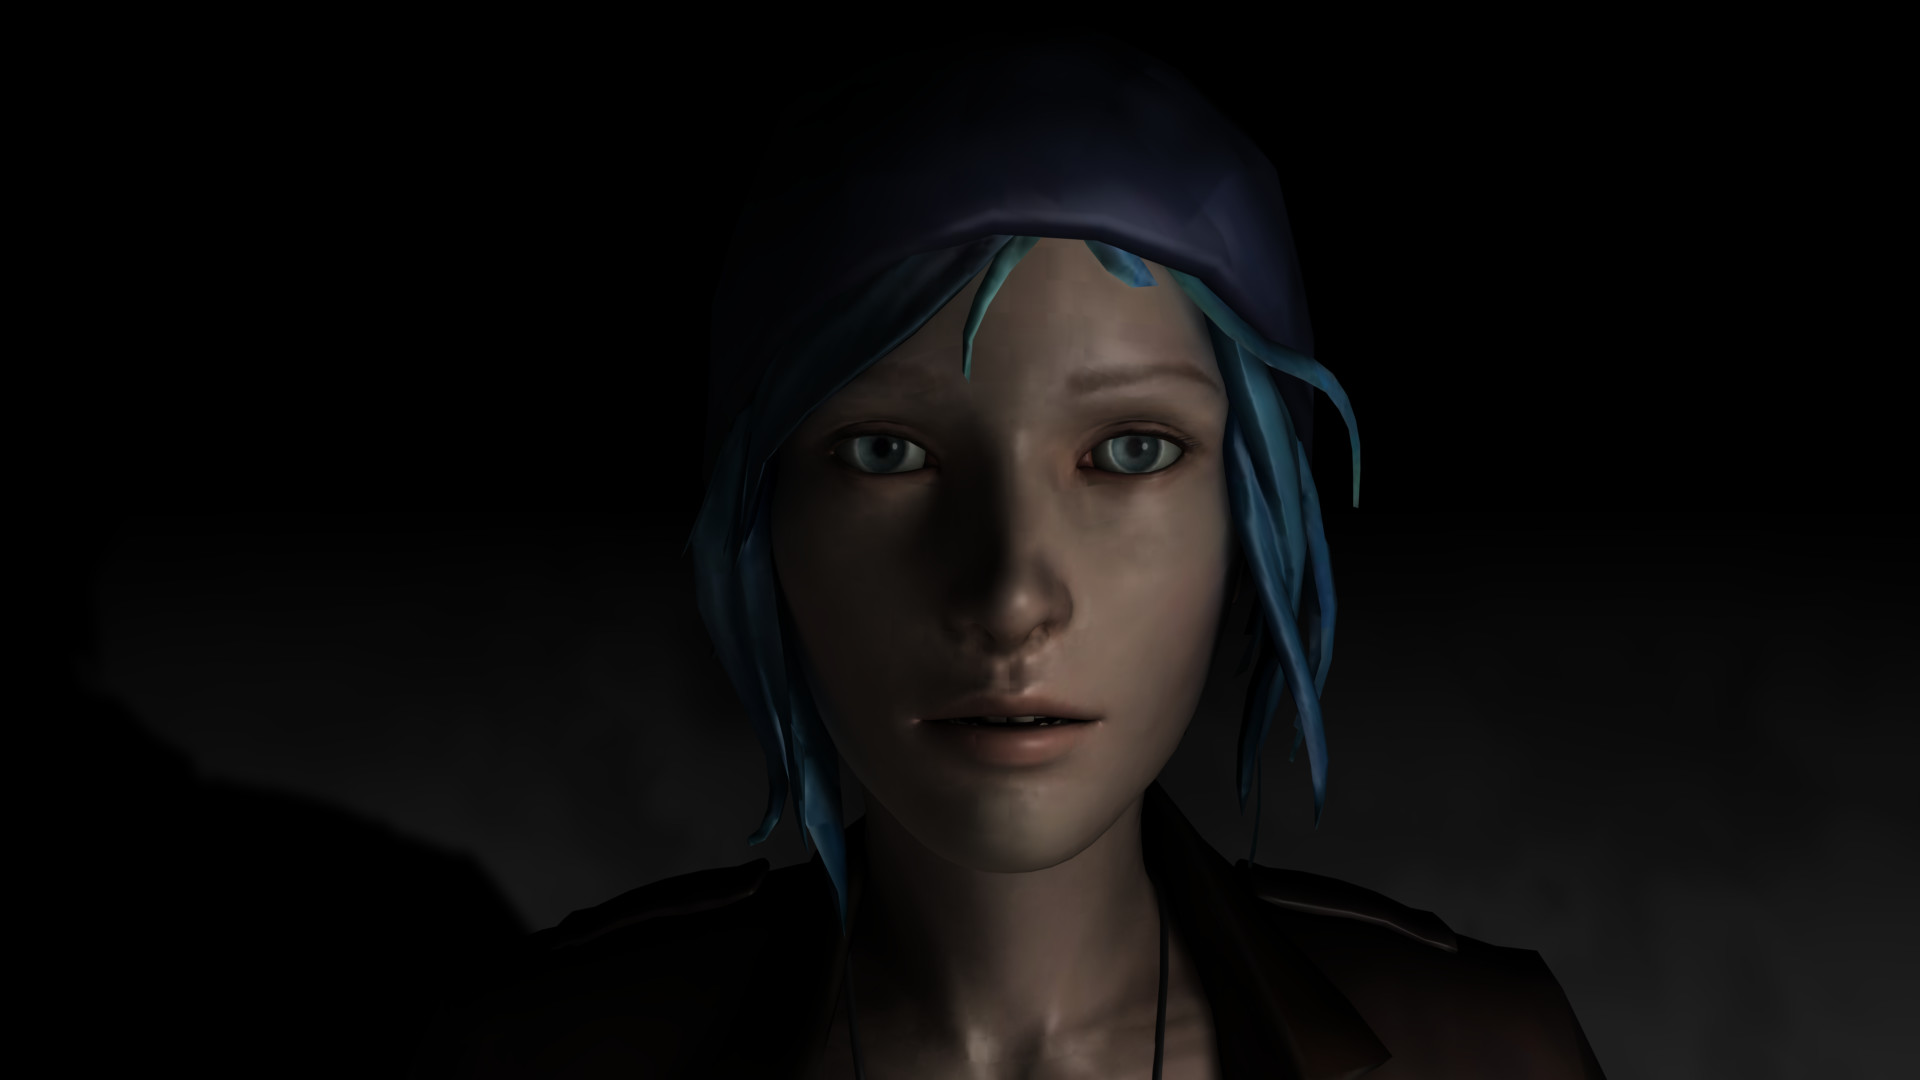 Res: 1920x1080, ... The Faces Of LiS: Chloe Price by DerGrenadier